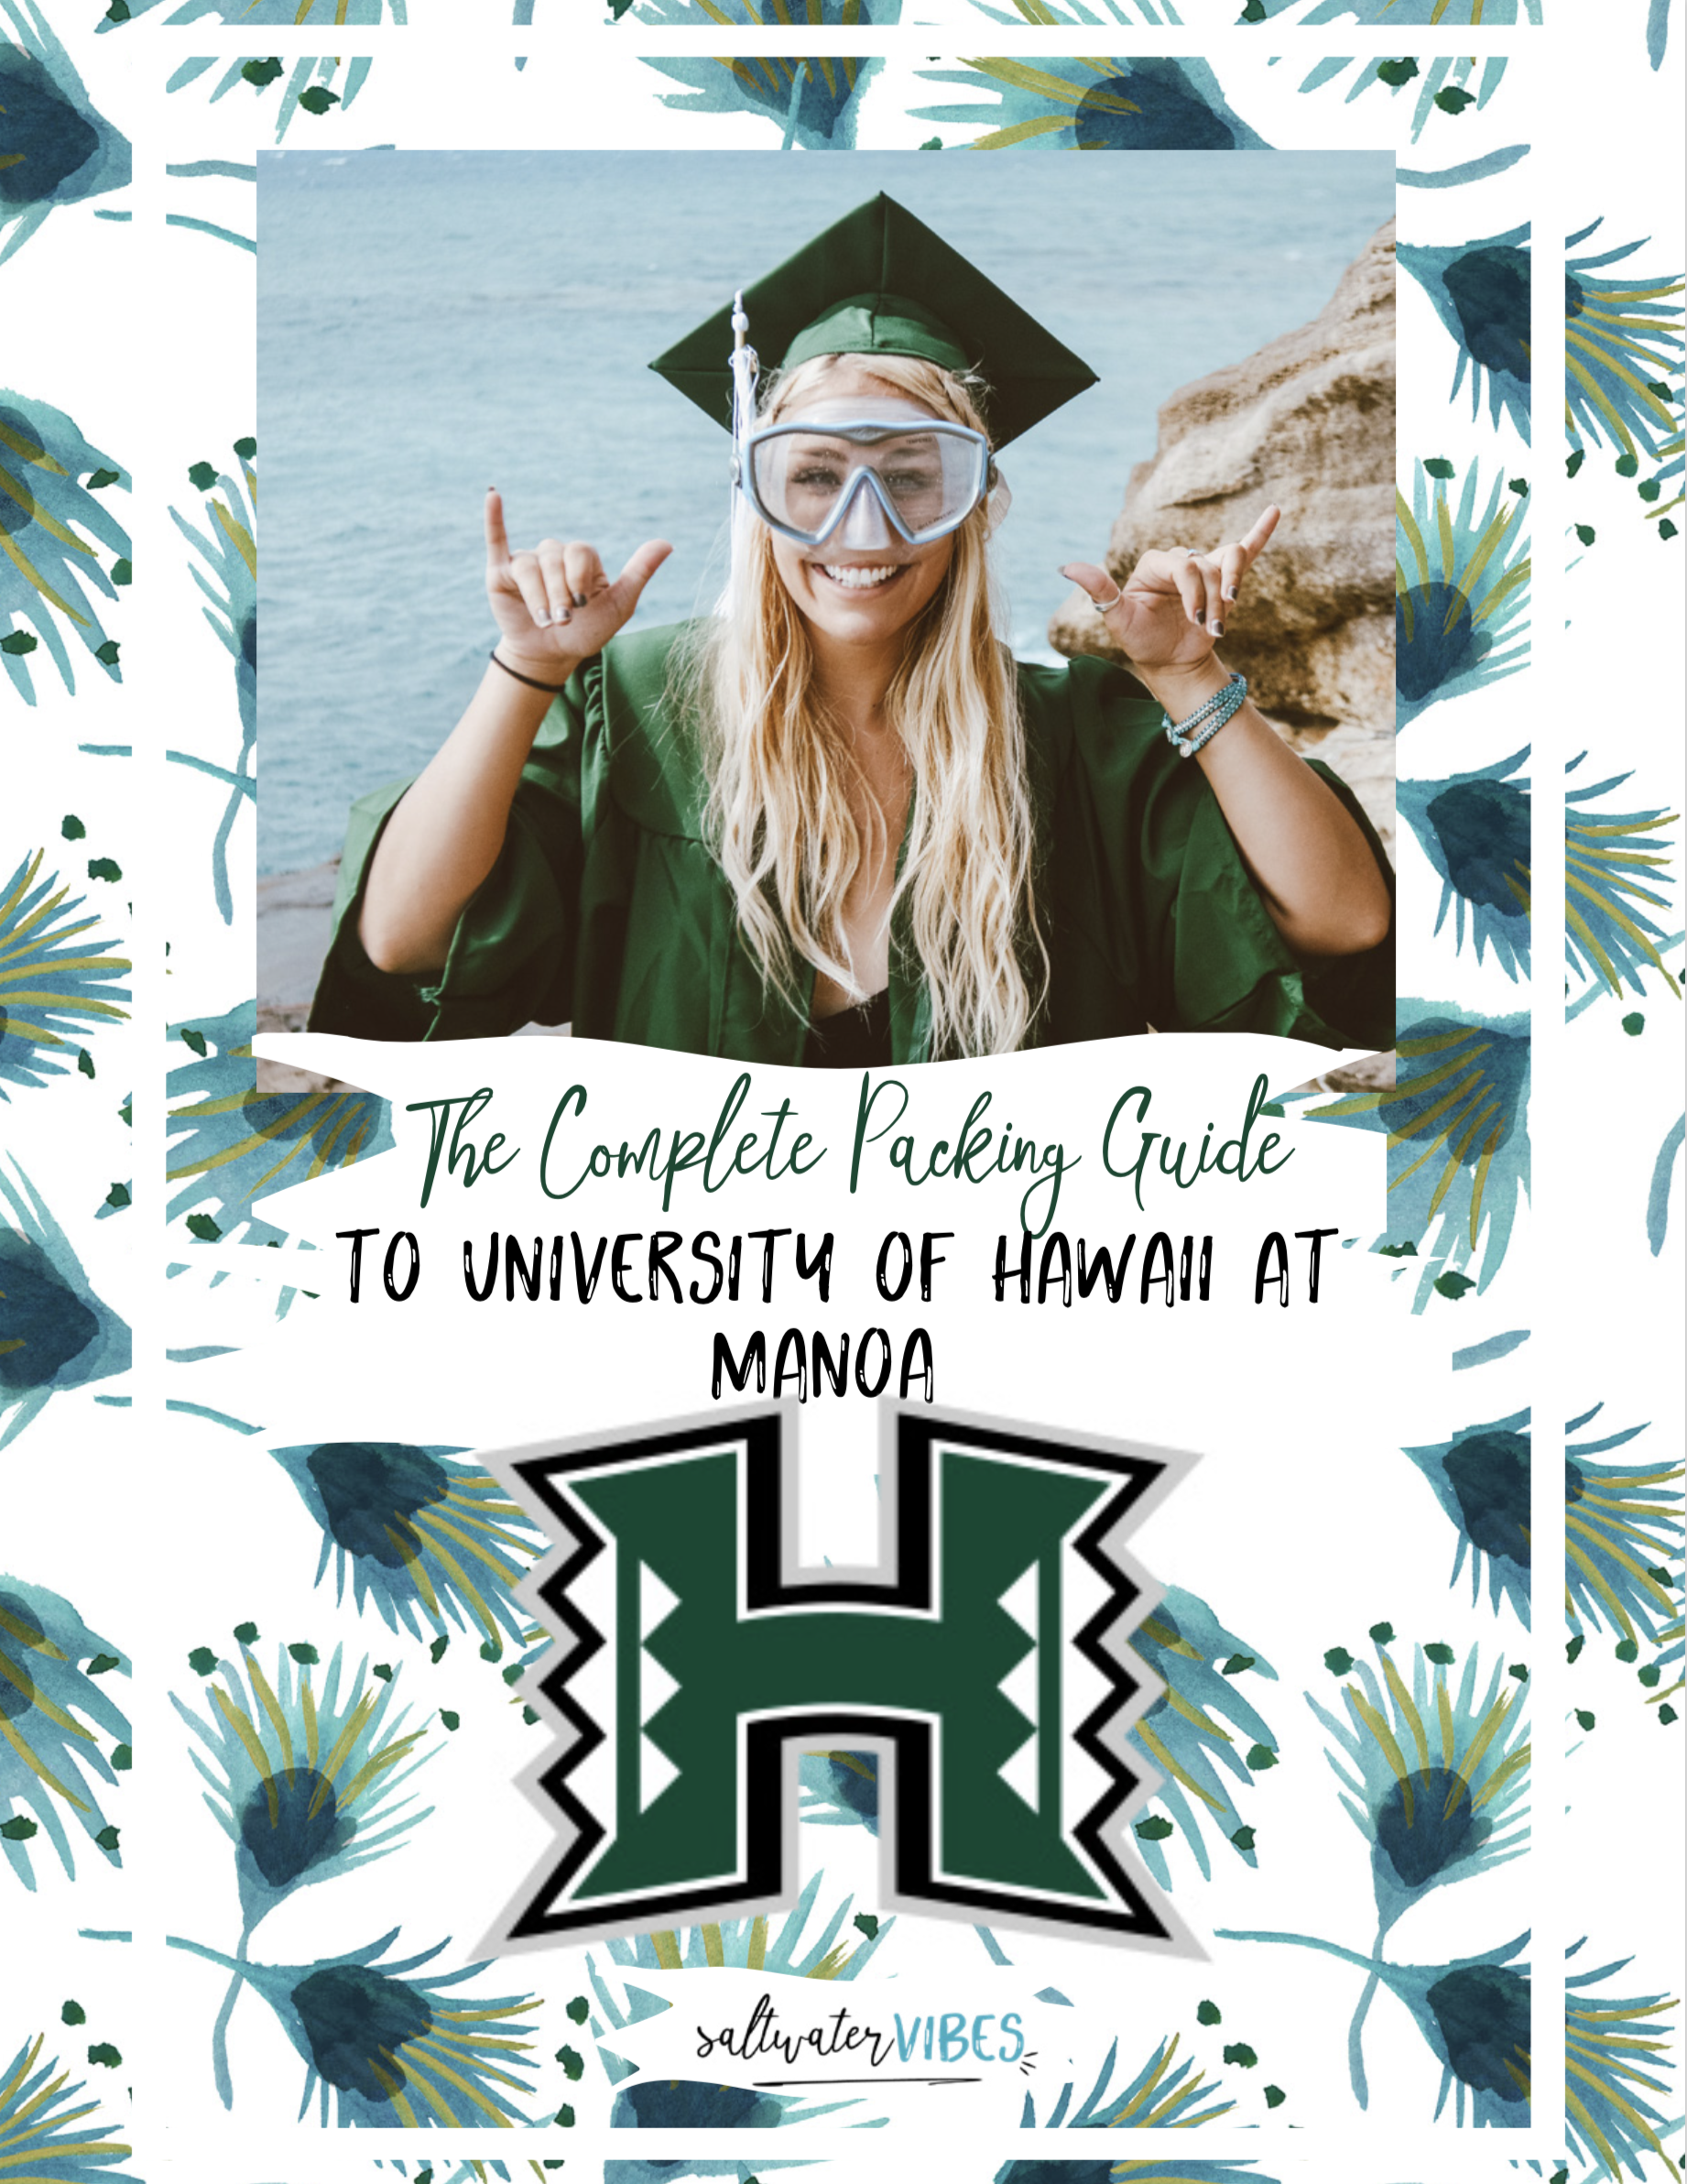 DOWNLOAD YOUR FREE UH MANOA PACKING LIST - this guide is full of everything you need to get ready for life at uh